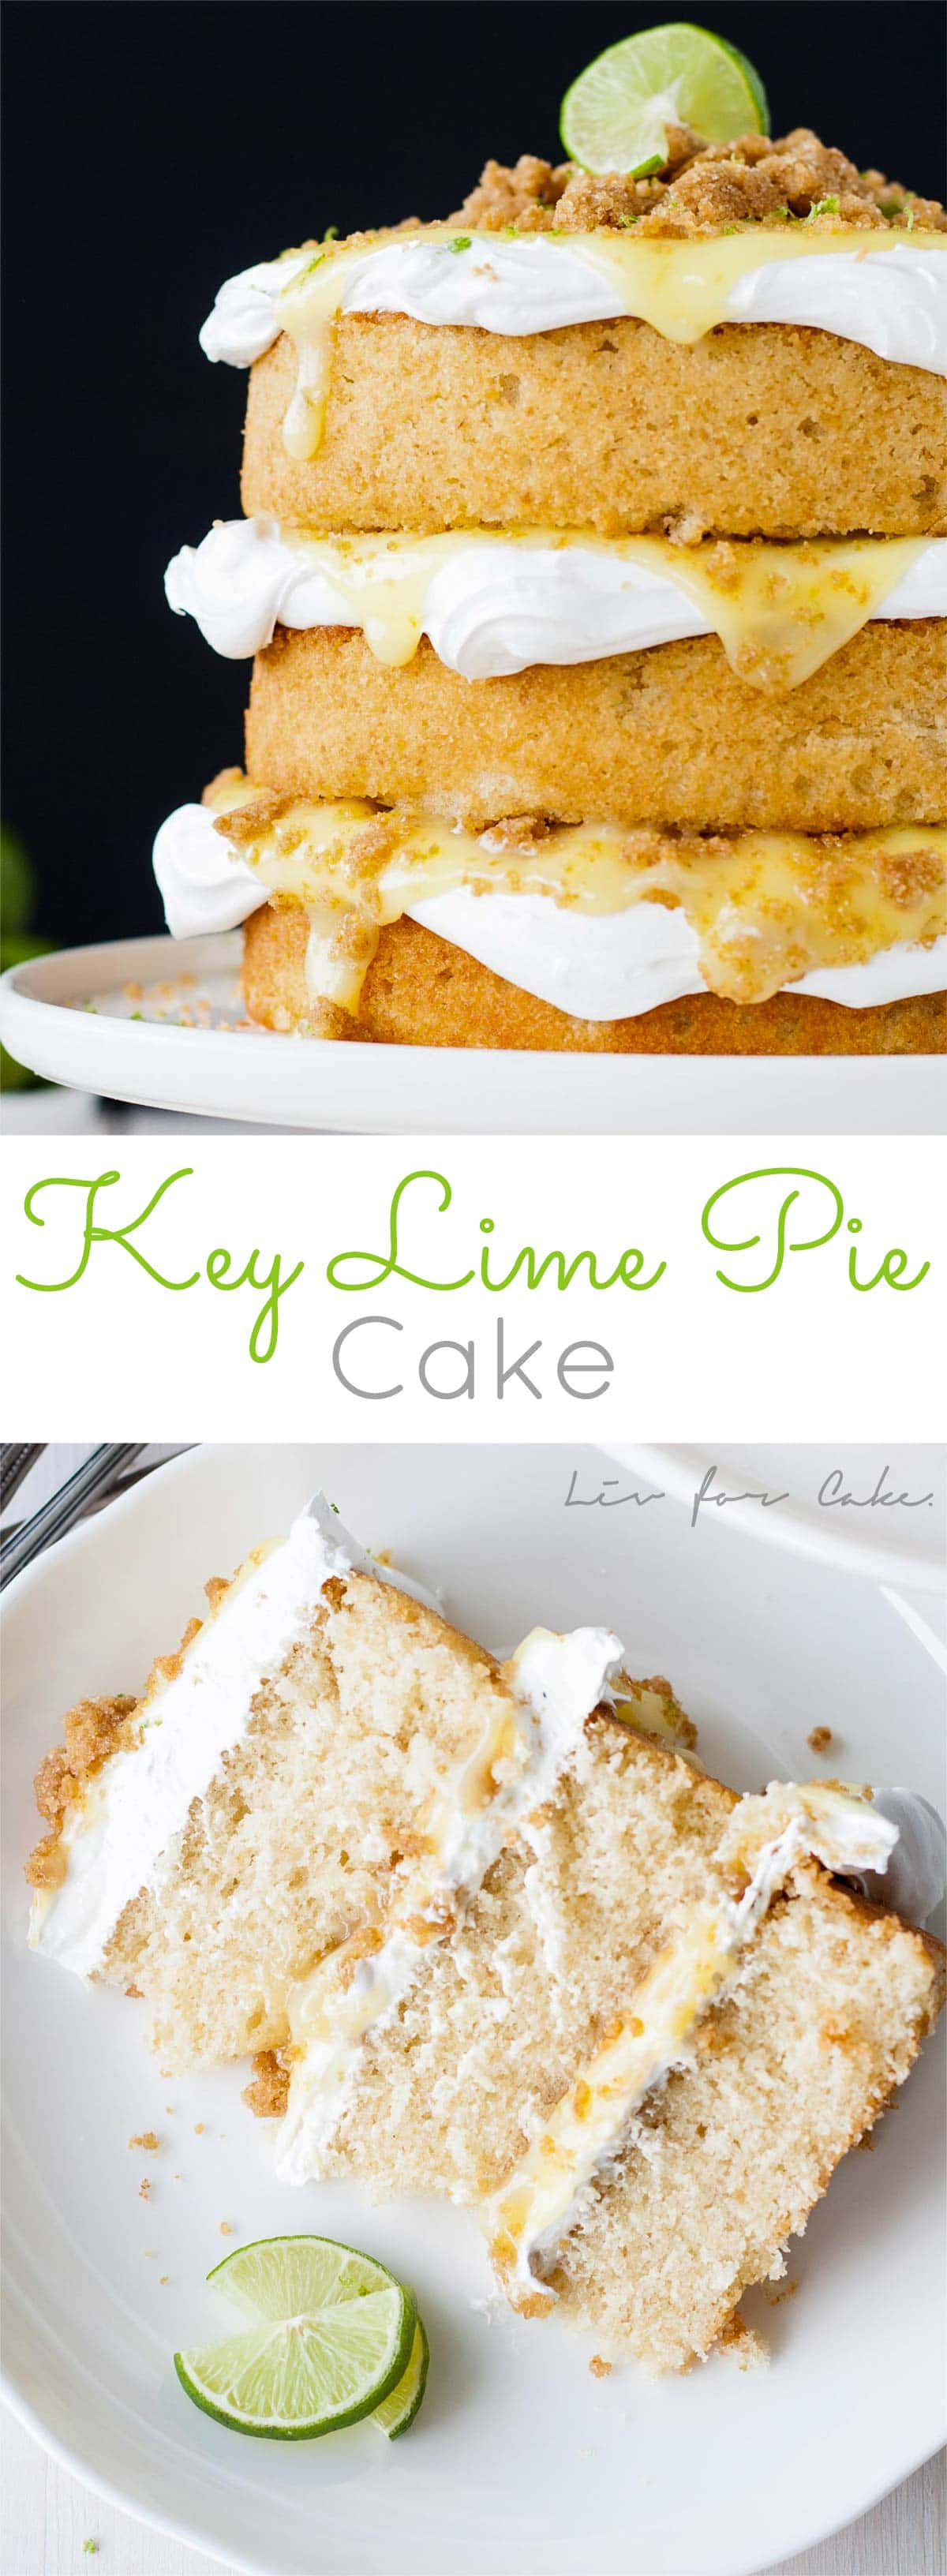 Key Lime Pie Cake! Graham cracker cake topped with meringue, key lime curd, and graham cracker crumble. | livforcake.com